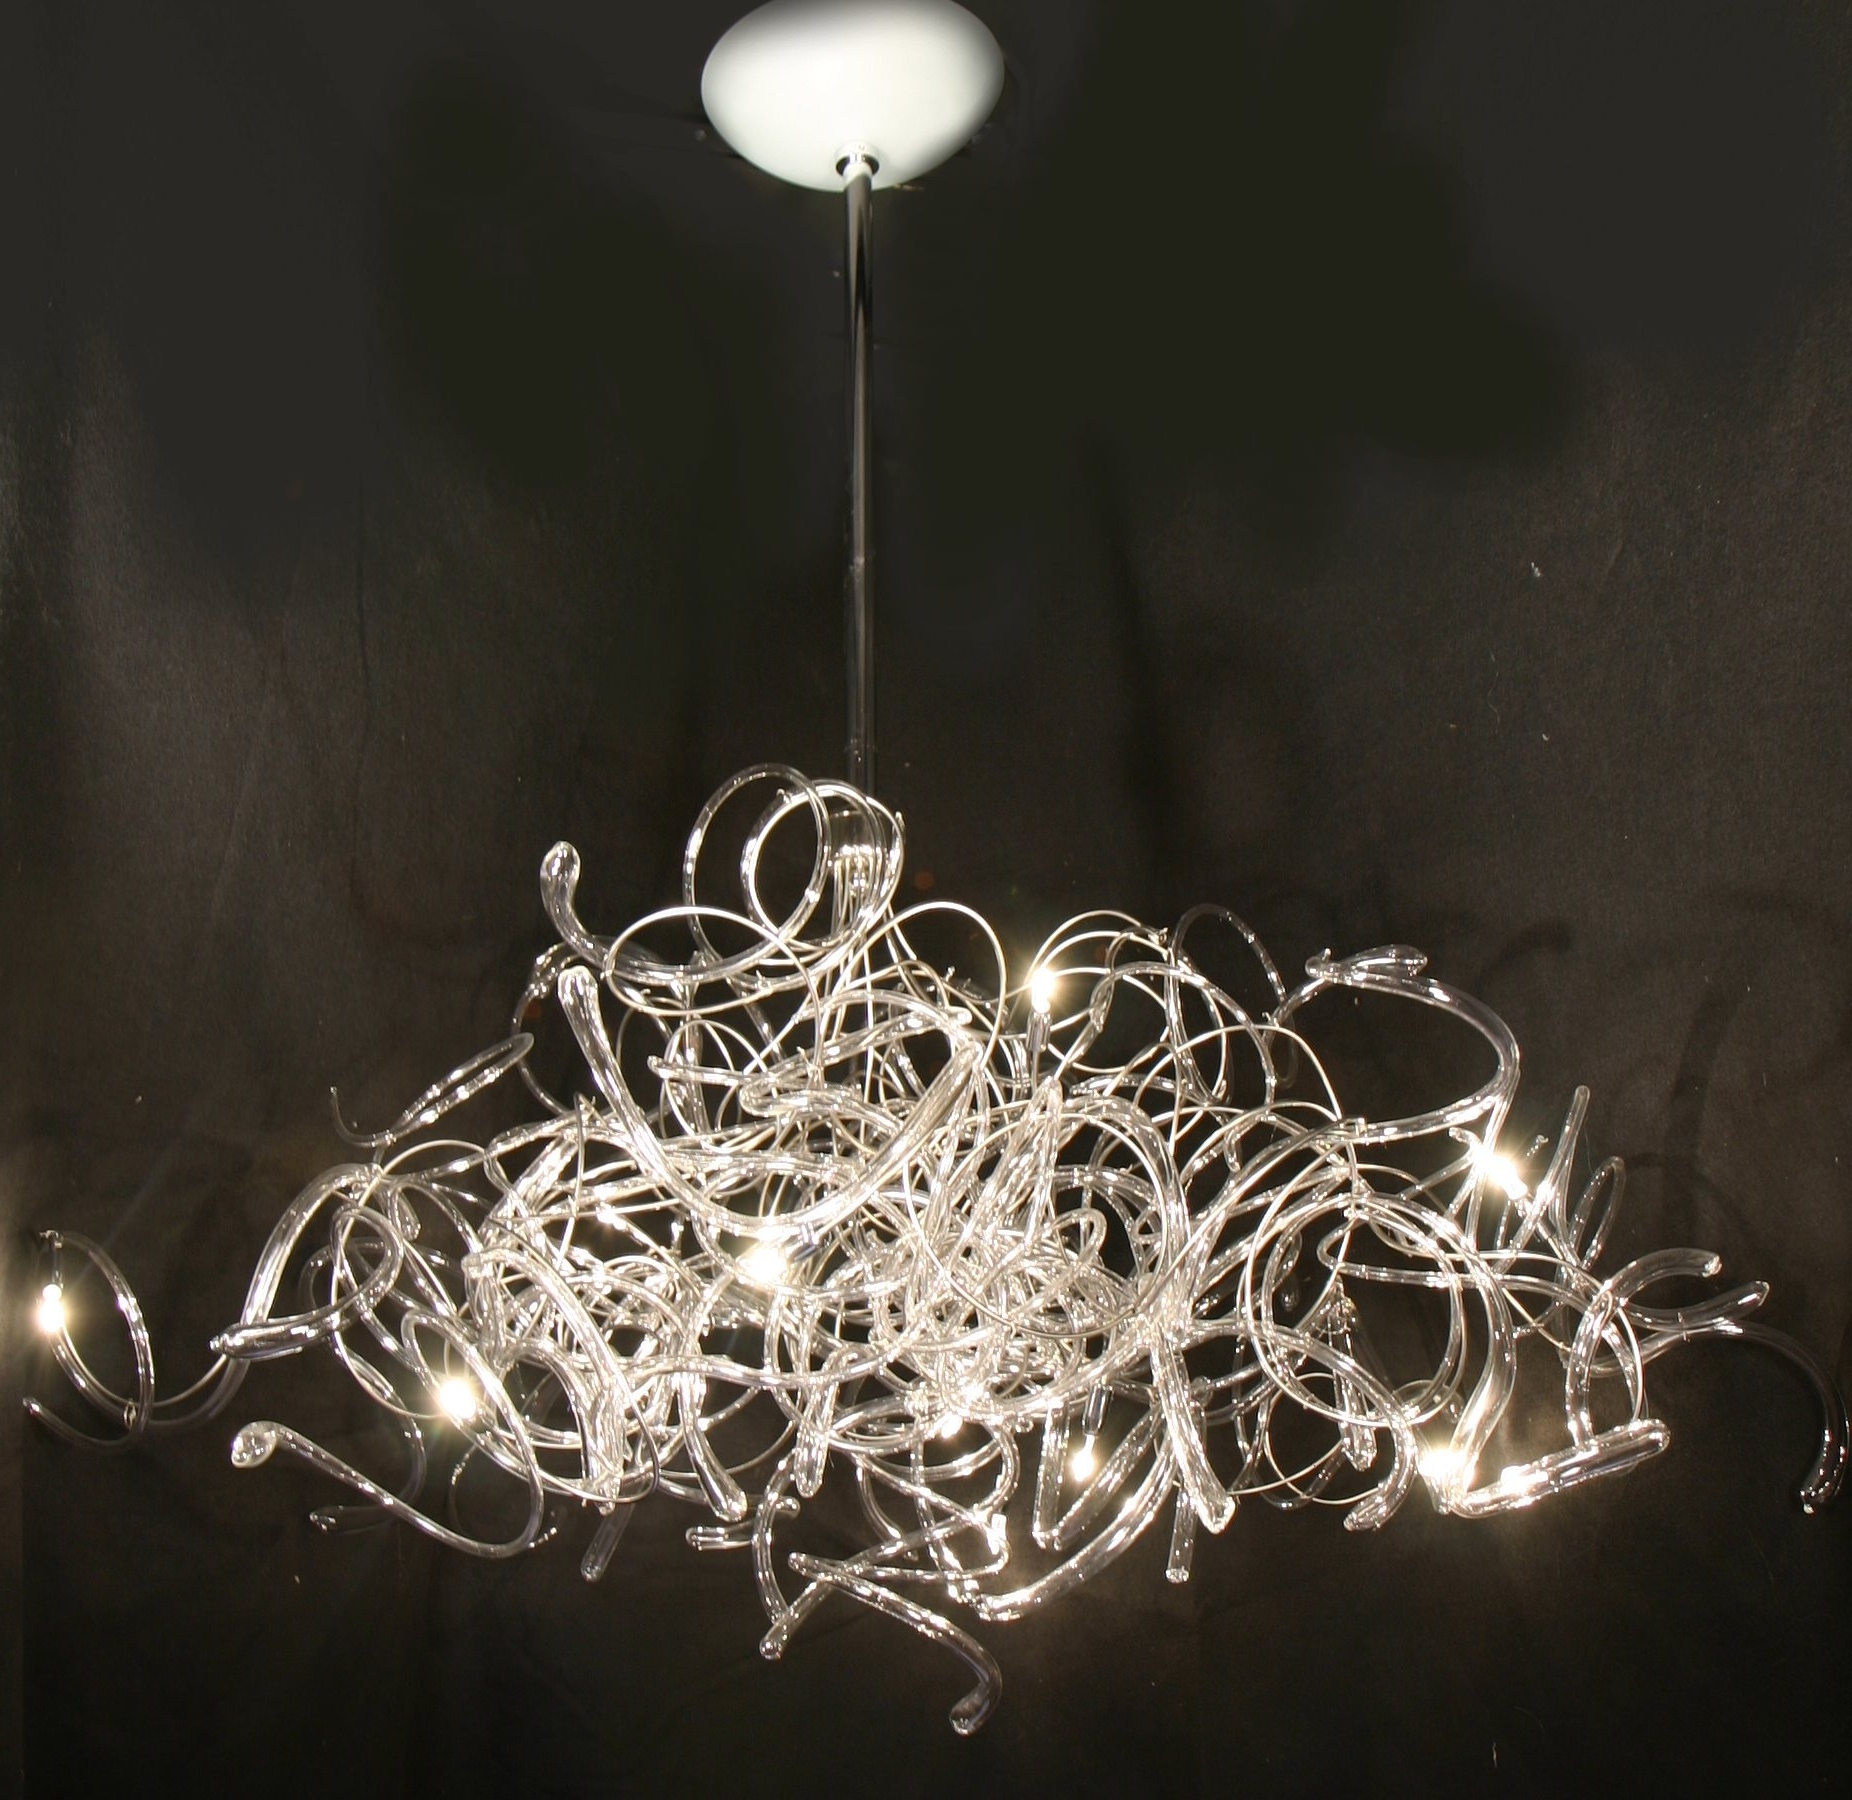 Ultra Modern Chandelier For Recent Ultra Modern Chandelier Lighting – Musethecollective (View 13 of 20)